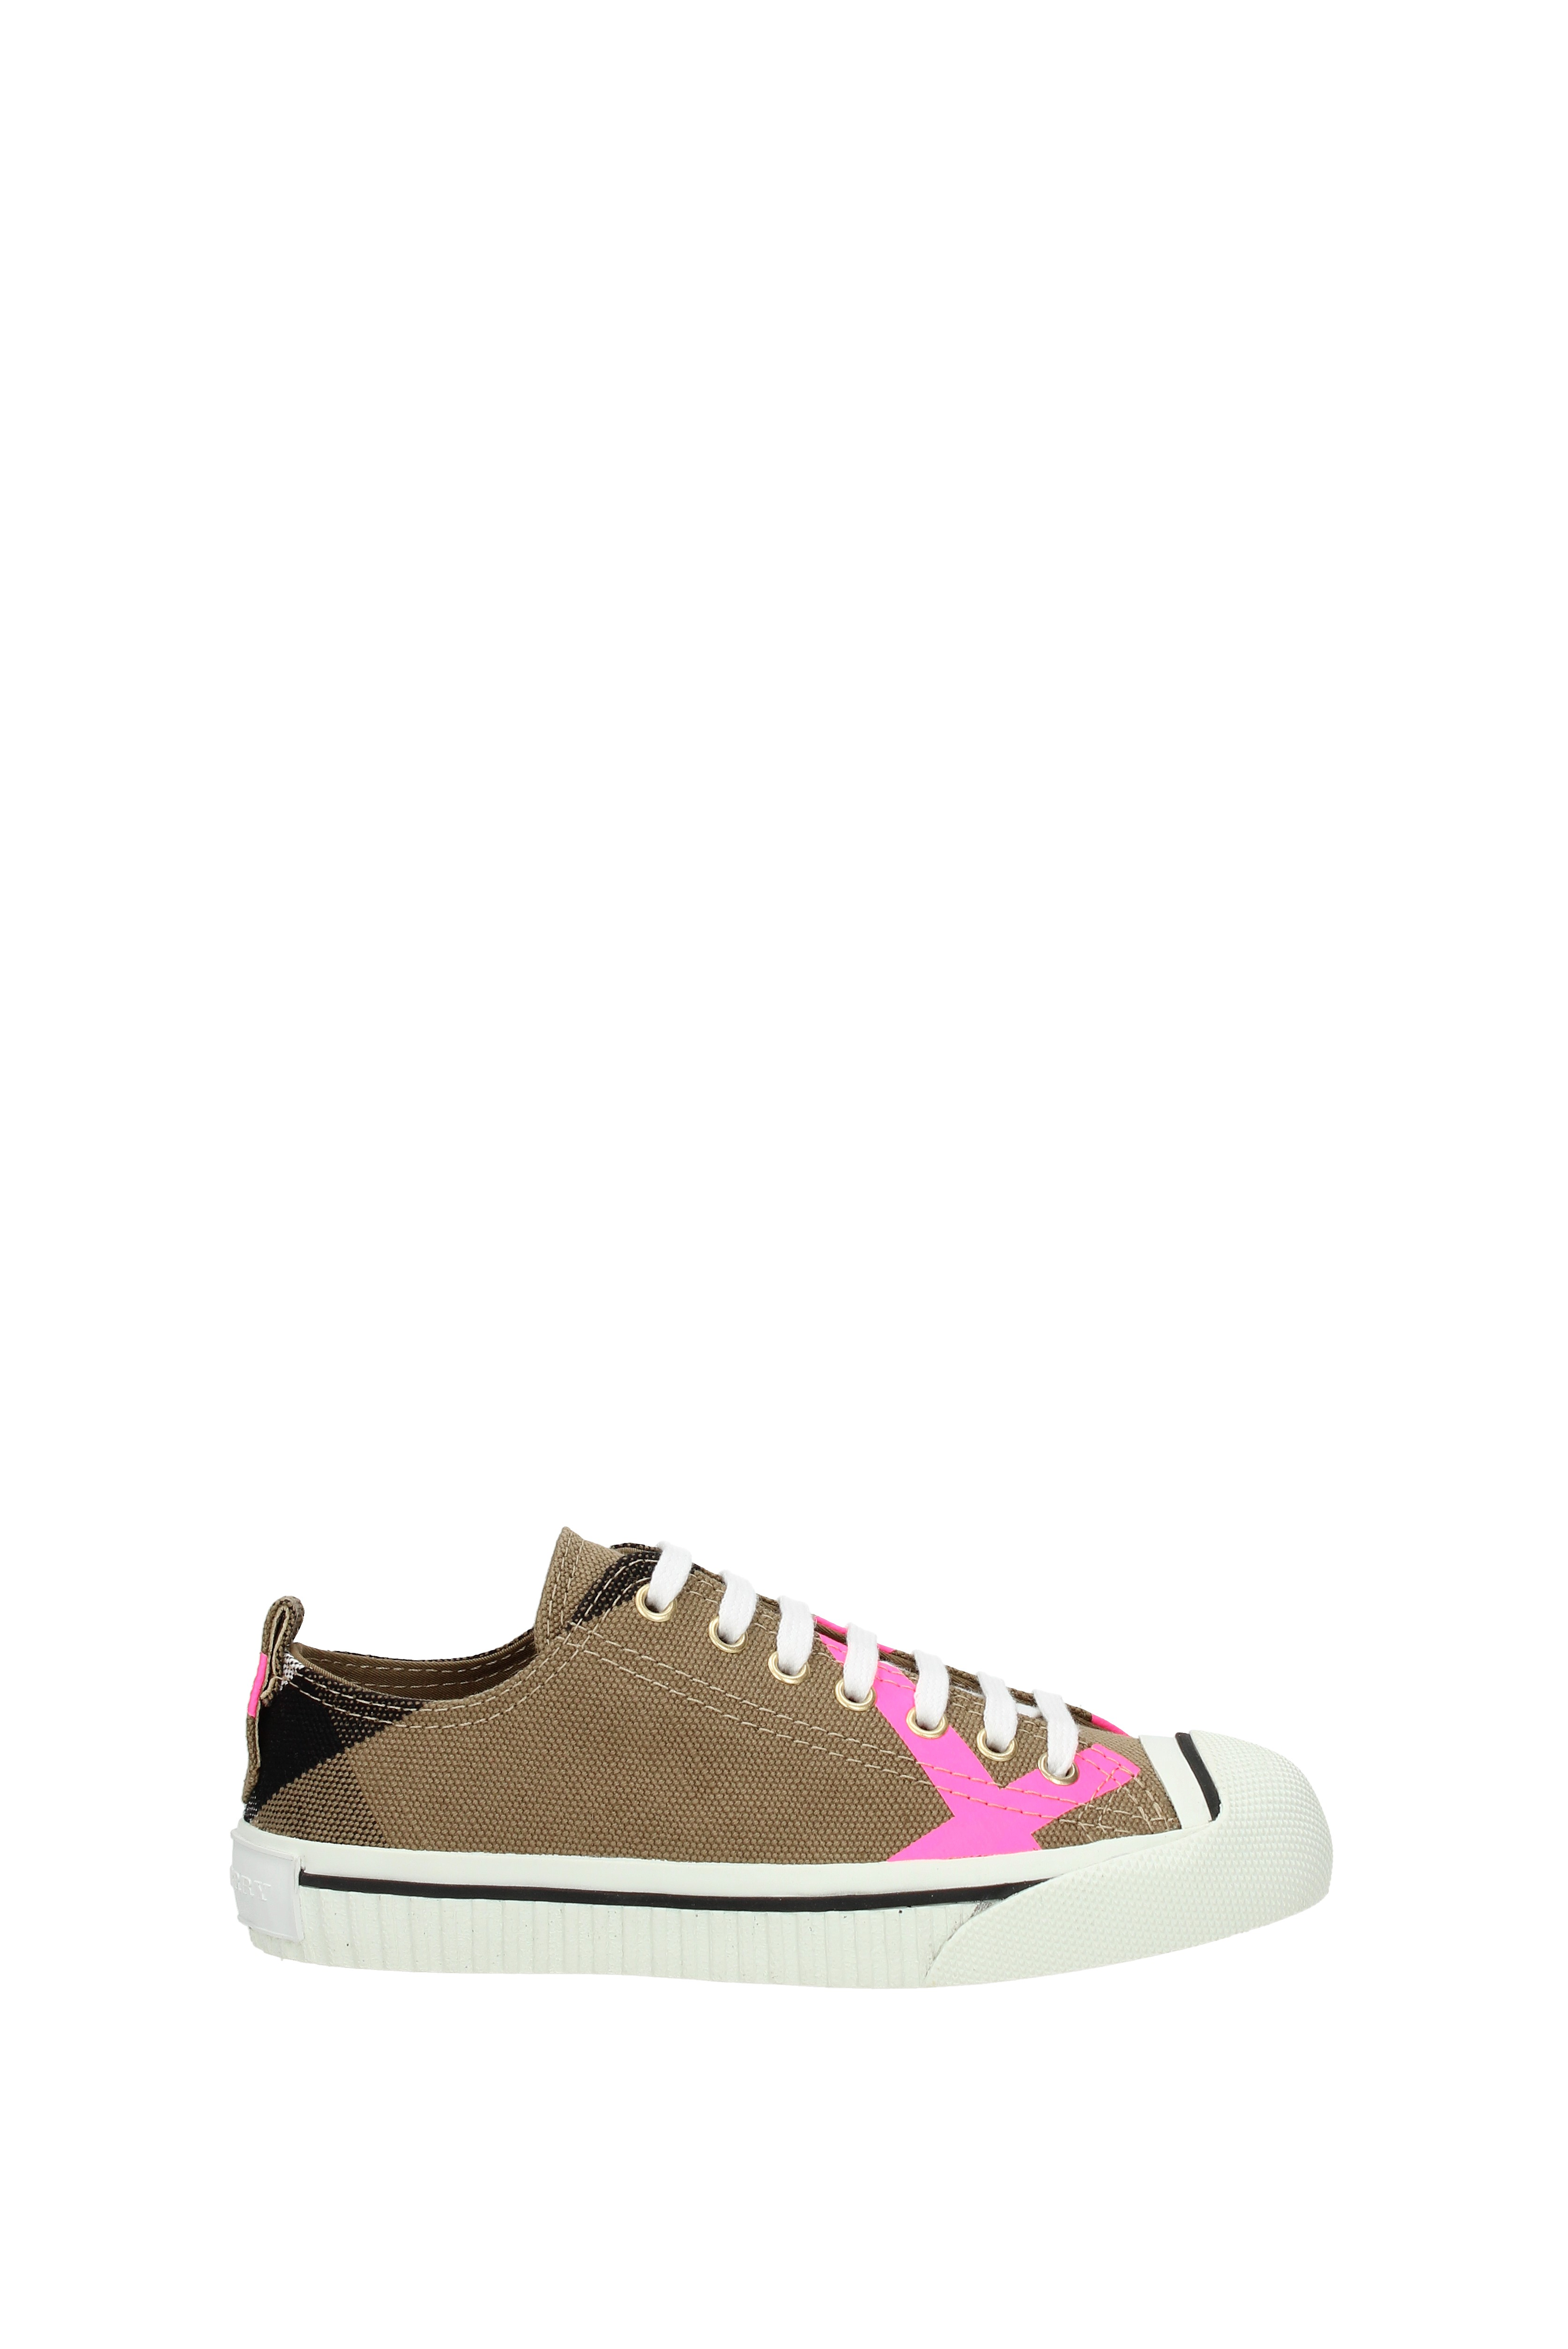 official photos fddd5 694a2 ... Sneakers Burberry Burberry Burberry - Tessuto (406635) a9d889